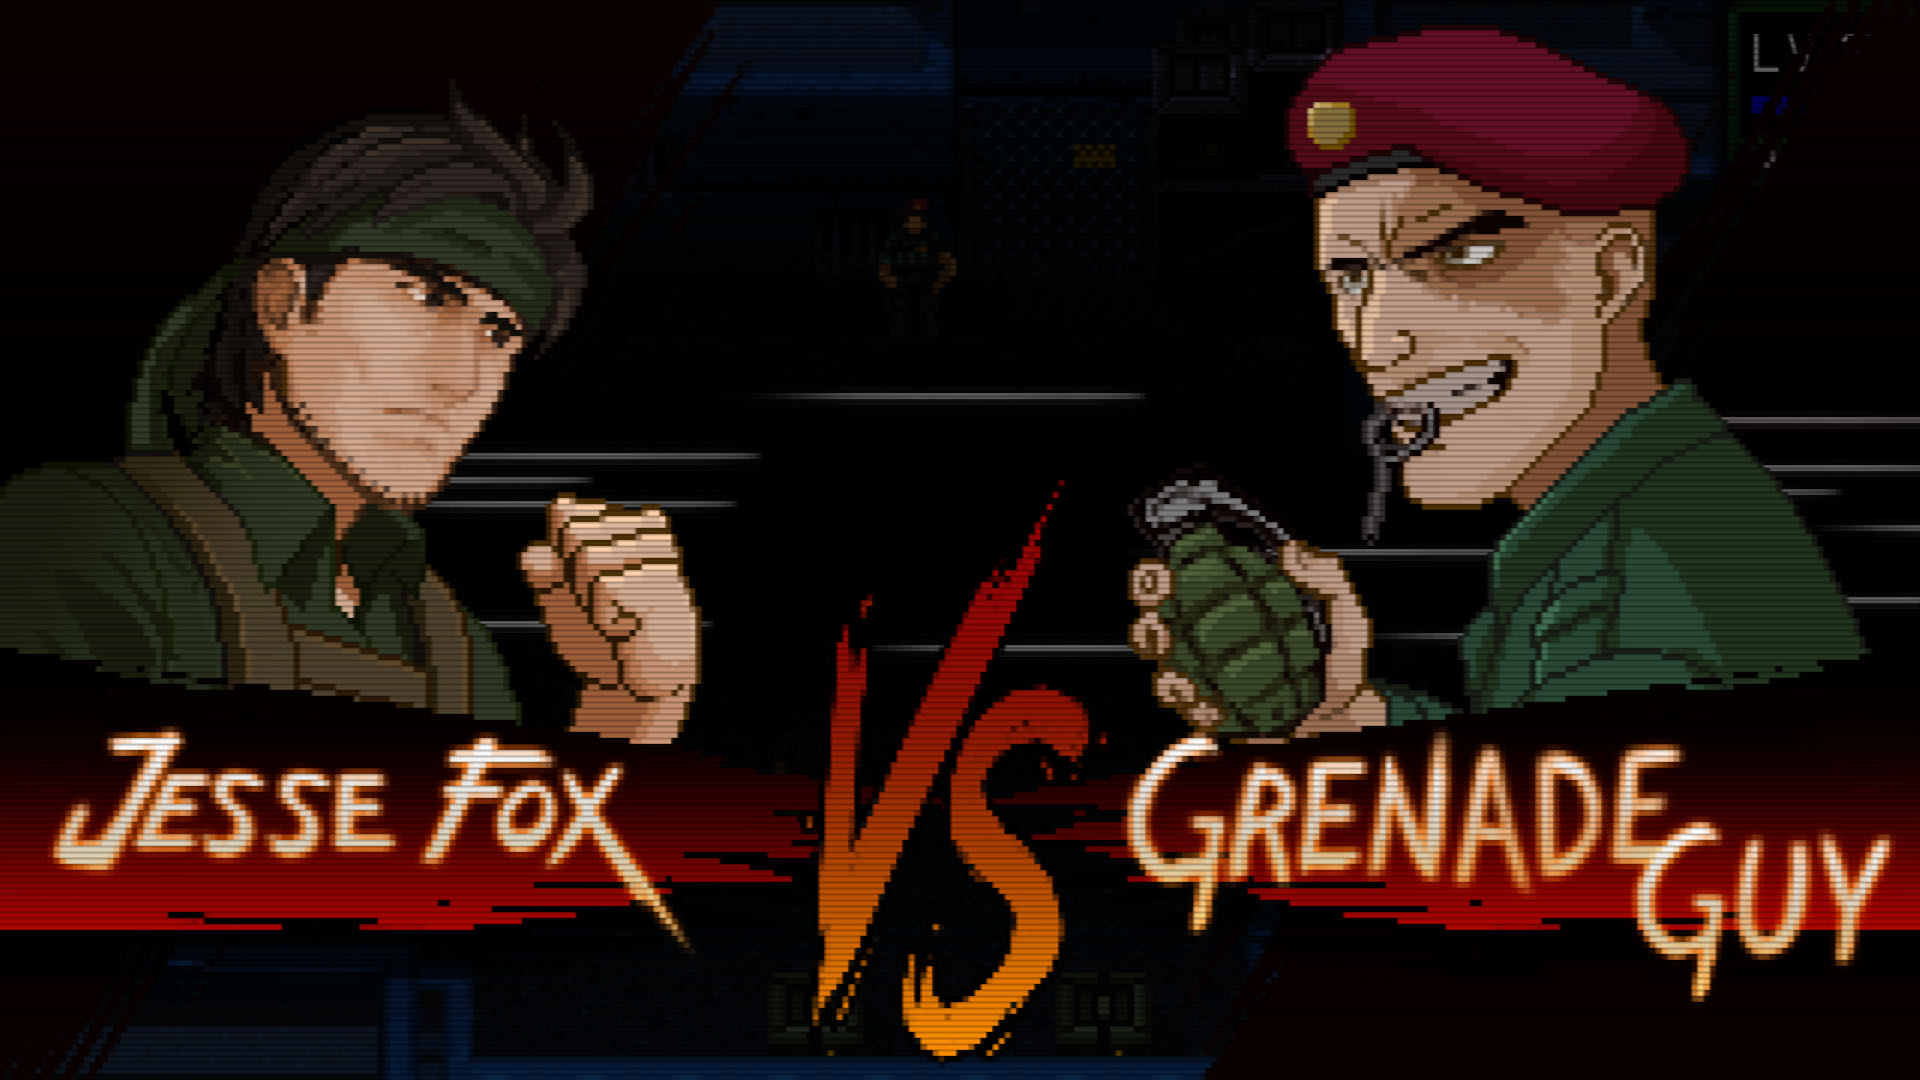 A screenshot from UnMetal, a Street-Fighter style intro screen showing your character facing a boss enemy, with a 'vs' tagline across the bottom.